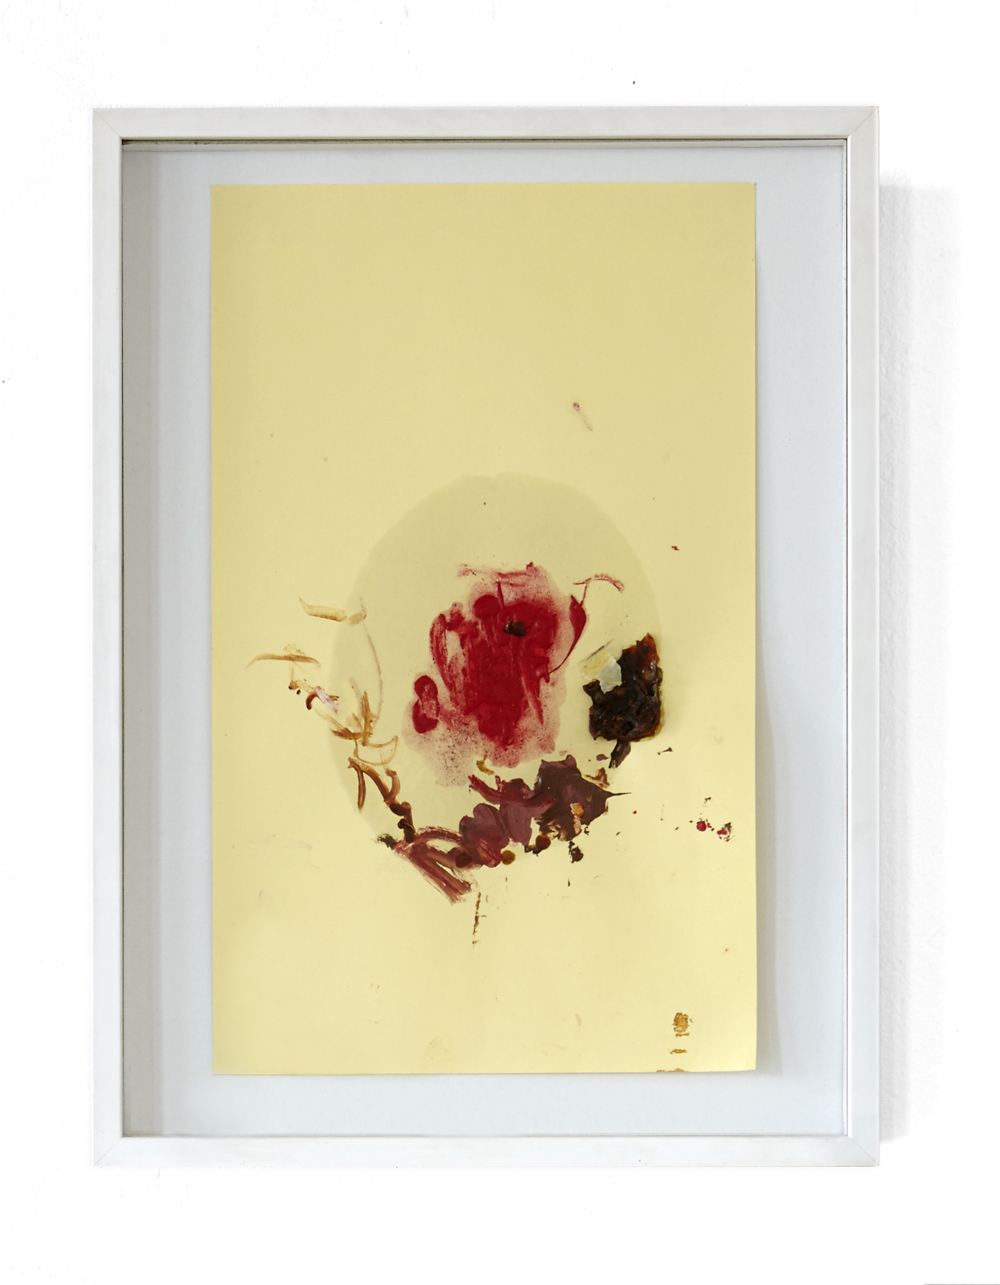 Karine Fauchard, Chinoisierie (Goldfish), 2013, mixed media and oil on paper, 43 x 32 cm, white floating frame